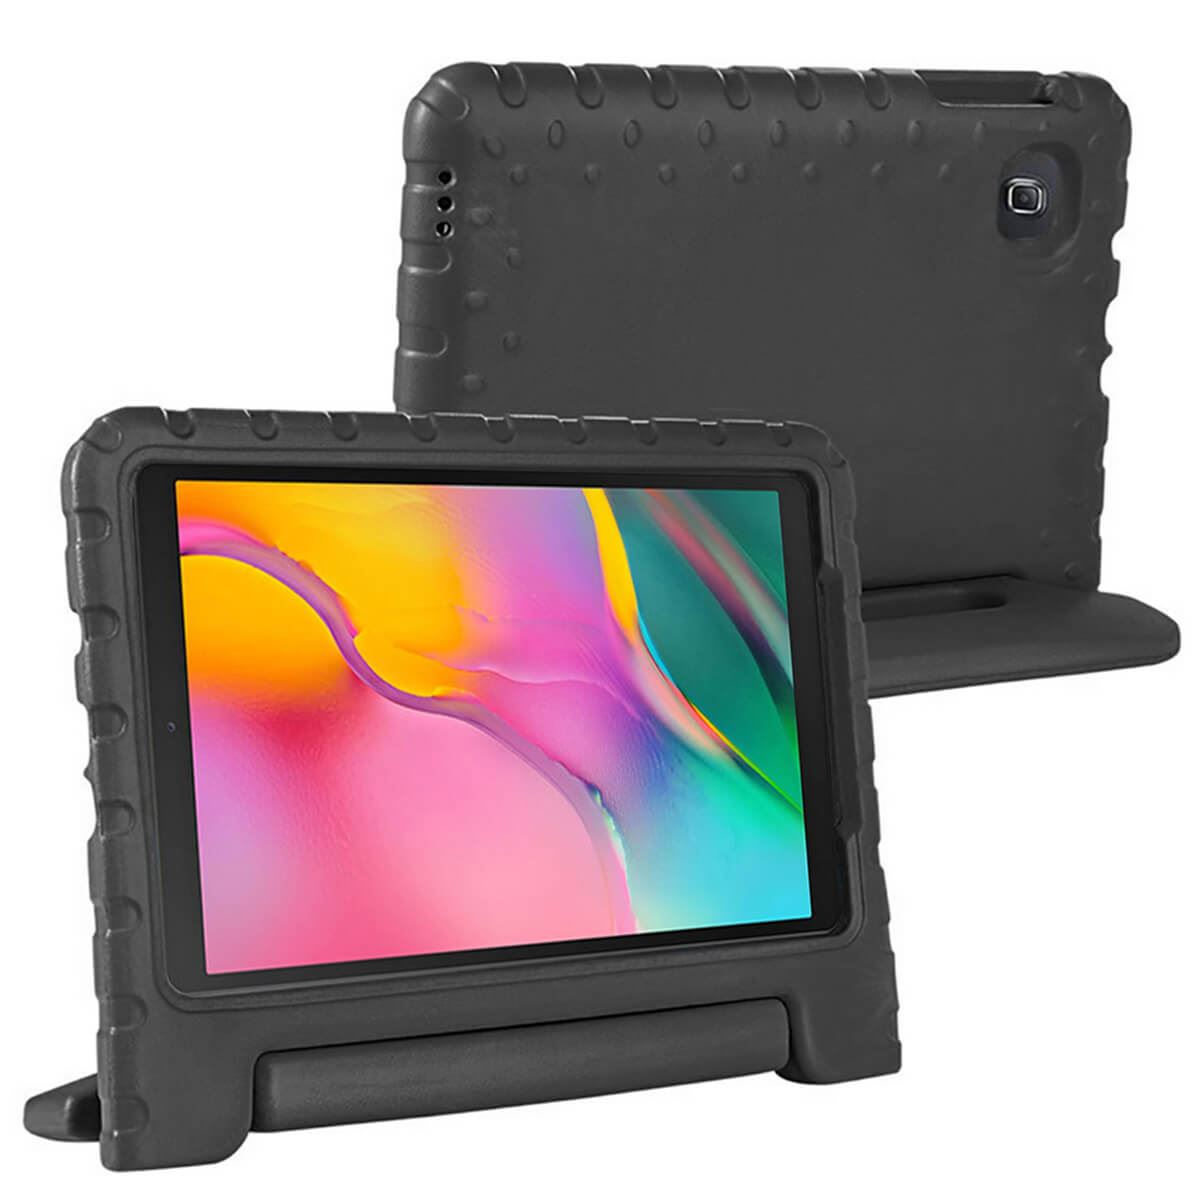 Shockproof-Protective-Case-Samsung-Galaxy-Tab-A-10-1-2016-Kids-Cover thumbnail 16